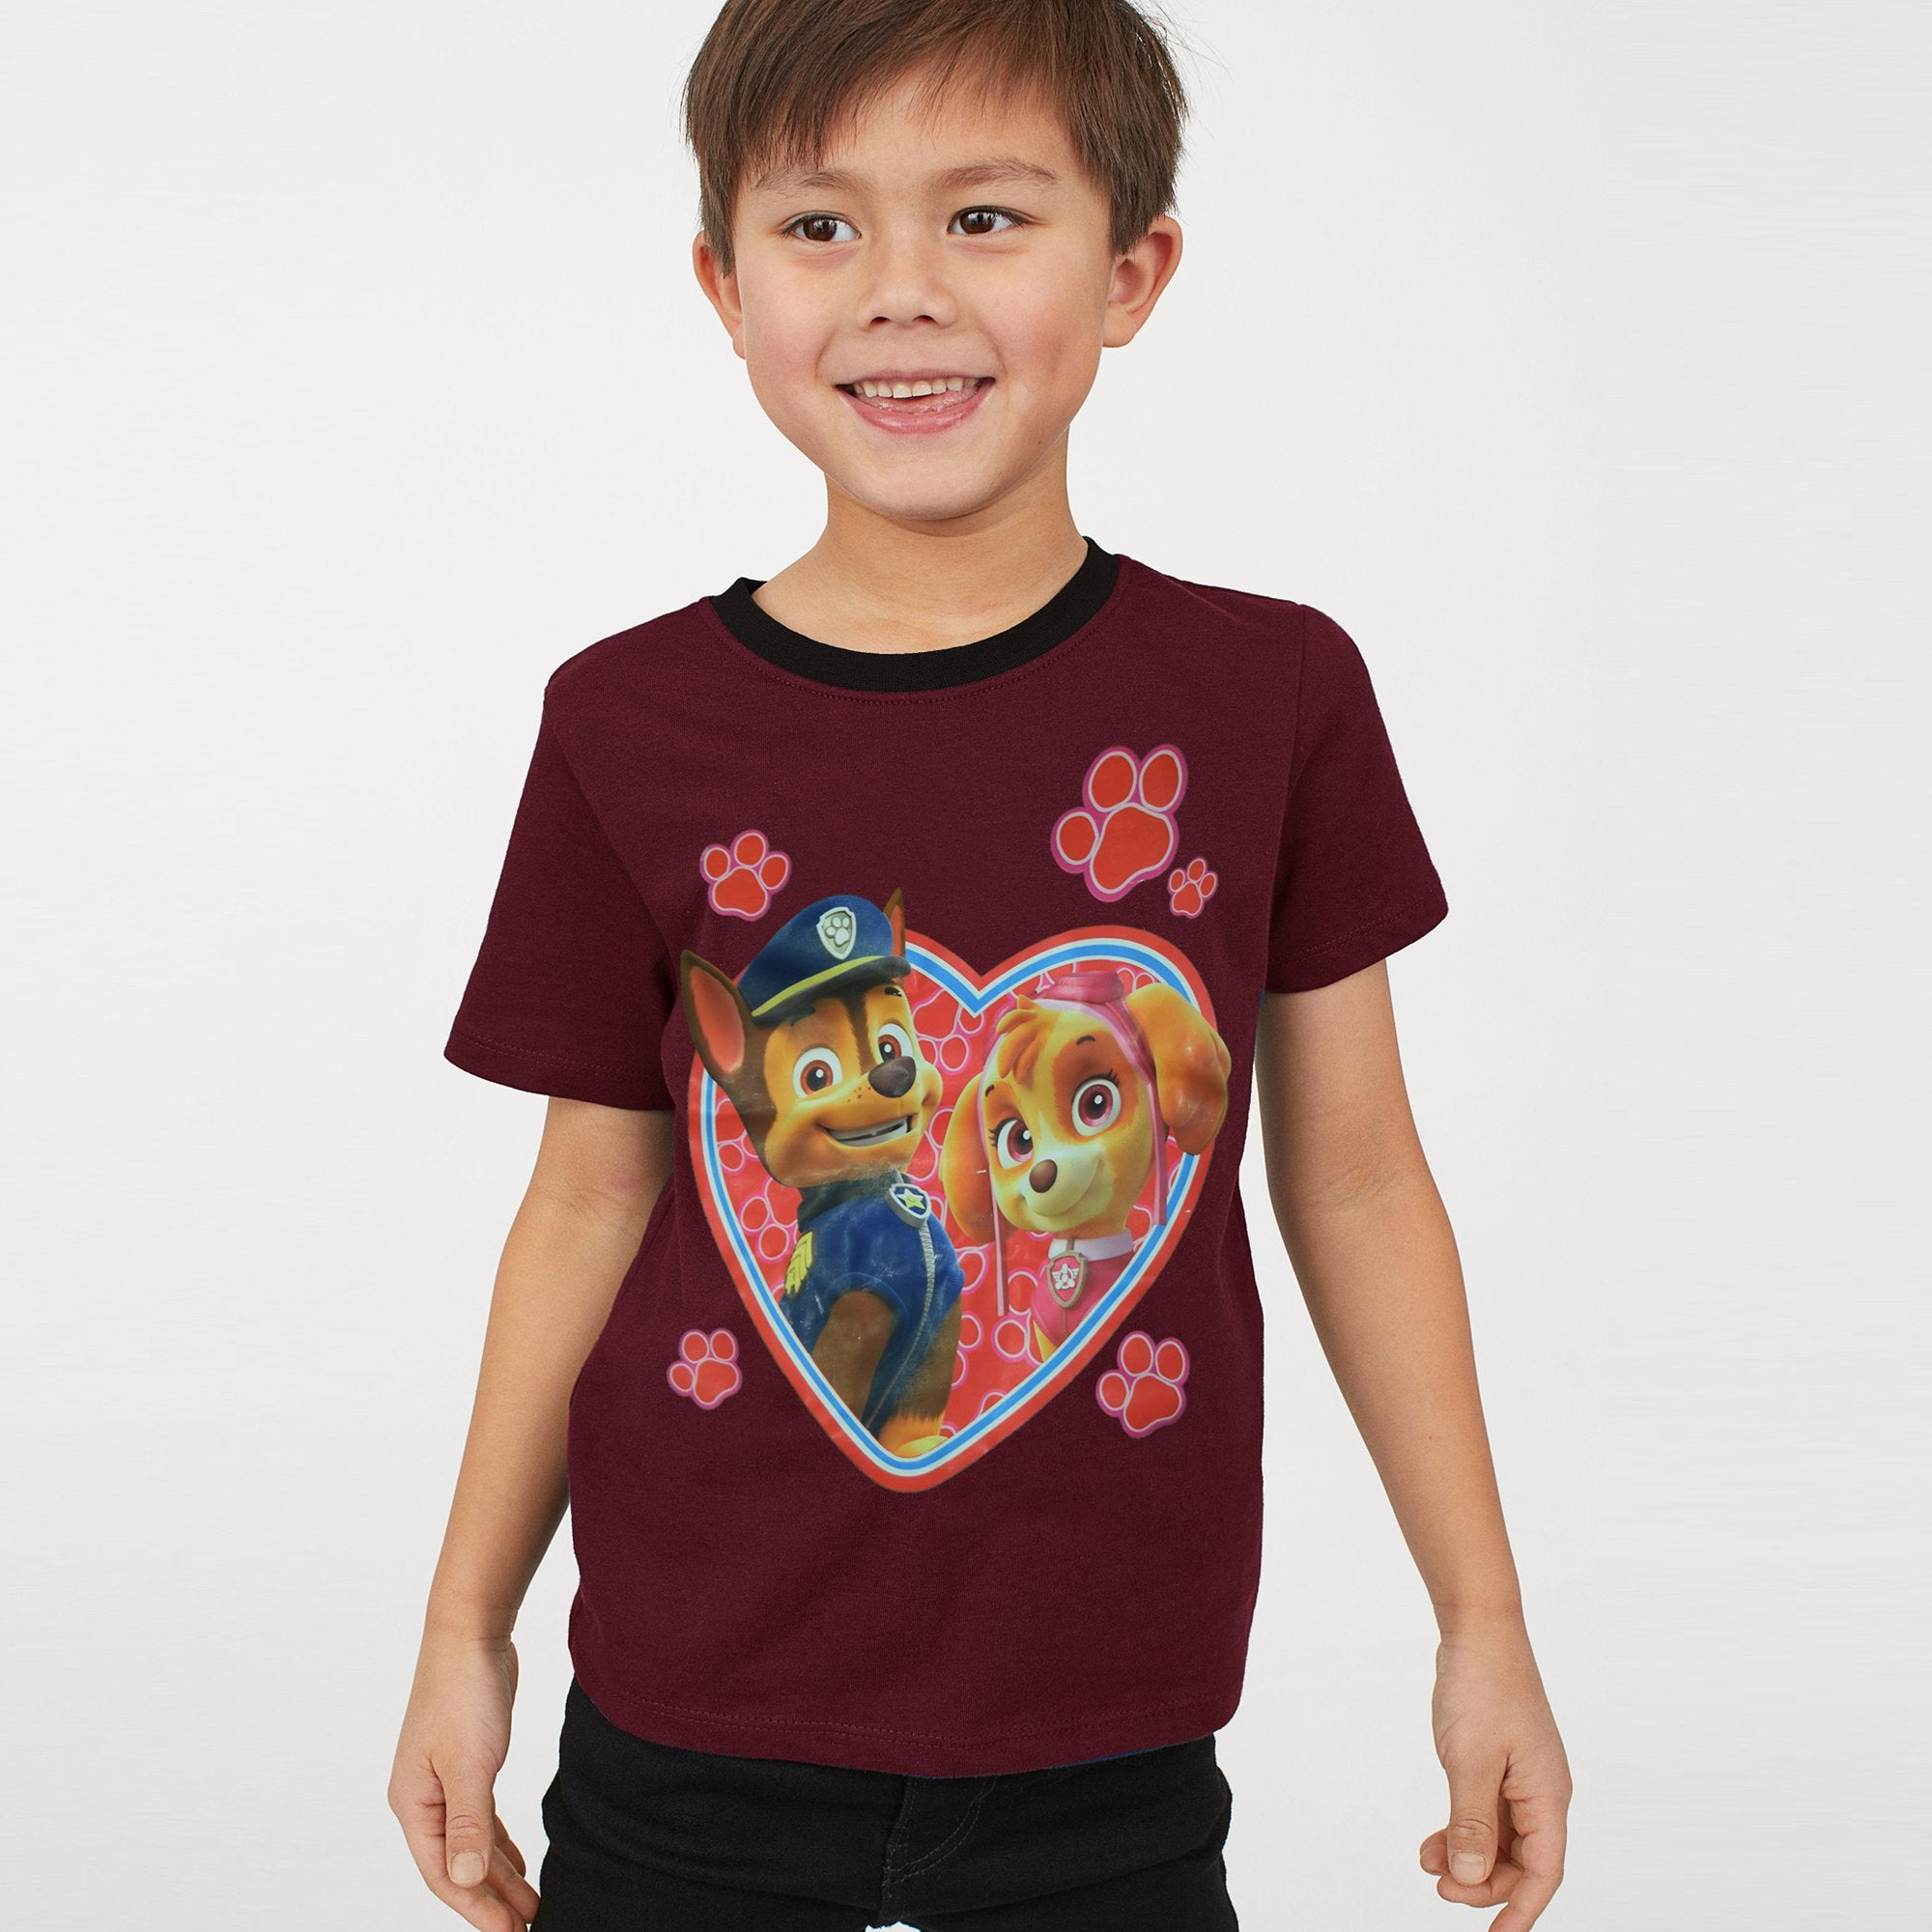 H M Crew Neck Single Jersey T Shirt For Kids Be8343